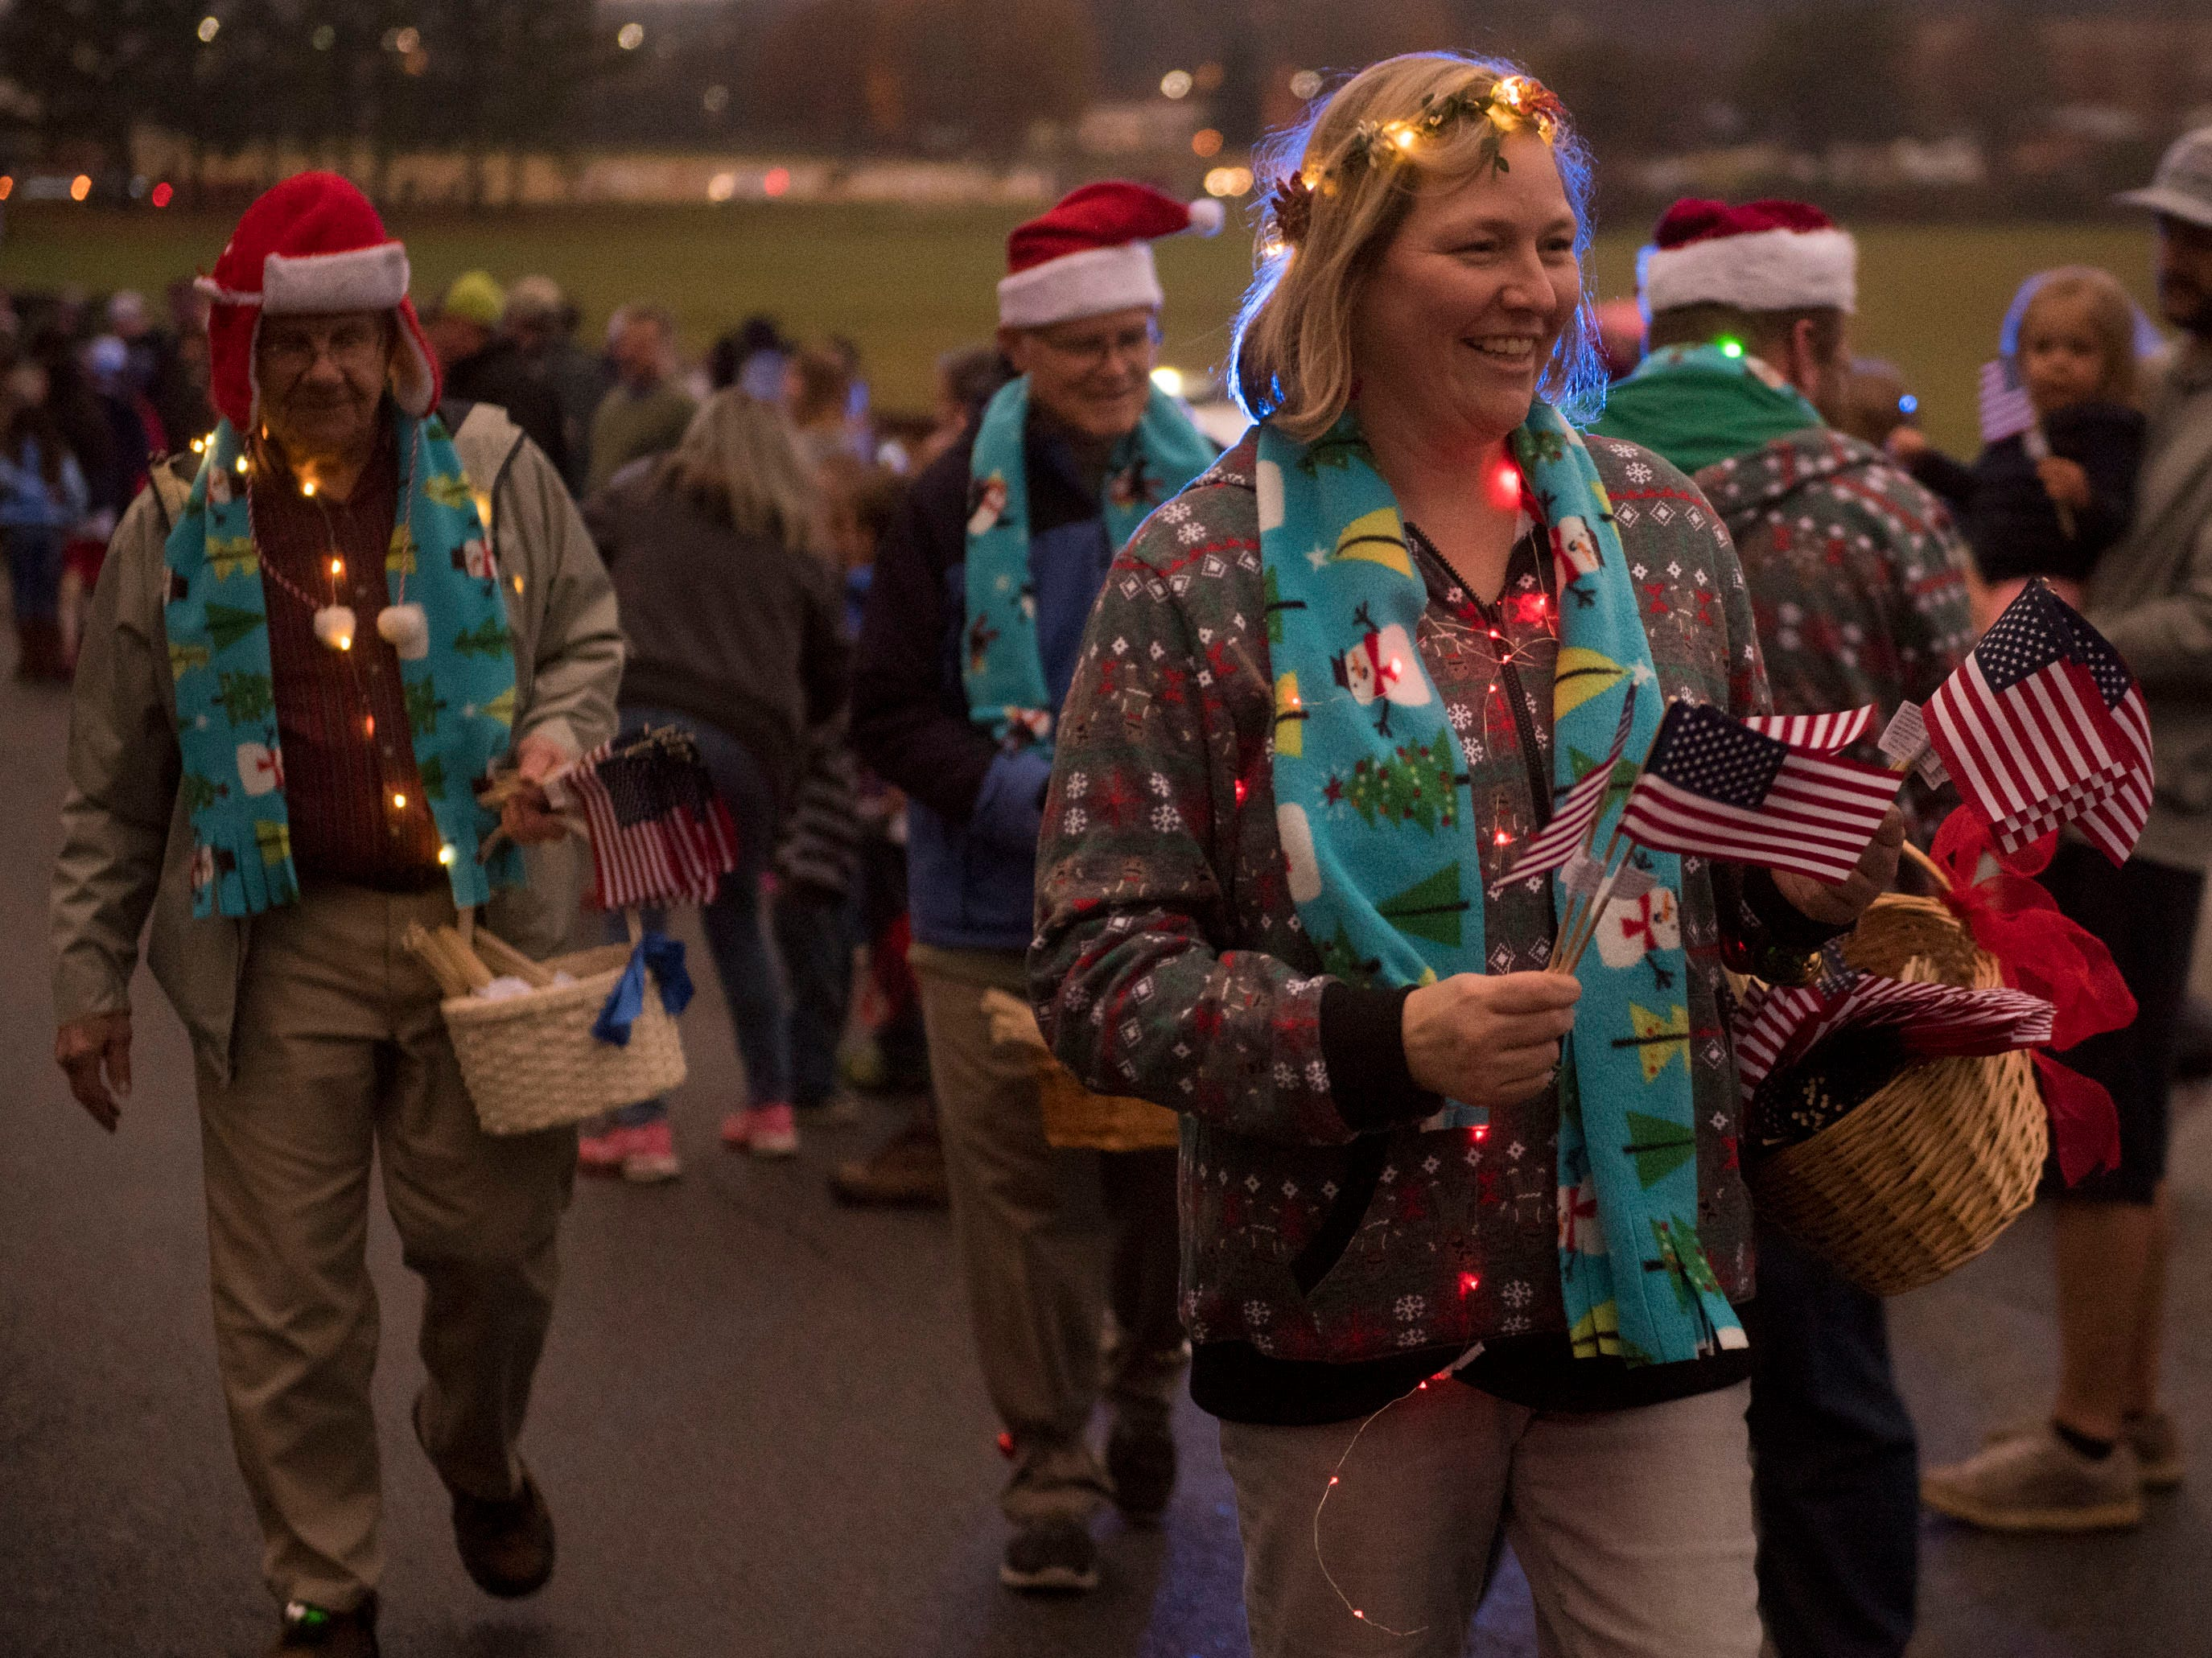 The Knox County Democratic Part in the Powell Lions Club Christmas Parade on Saturday, December 1, 2018.